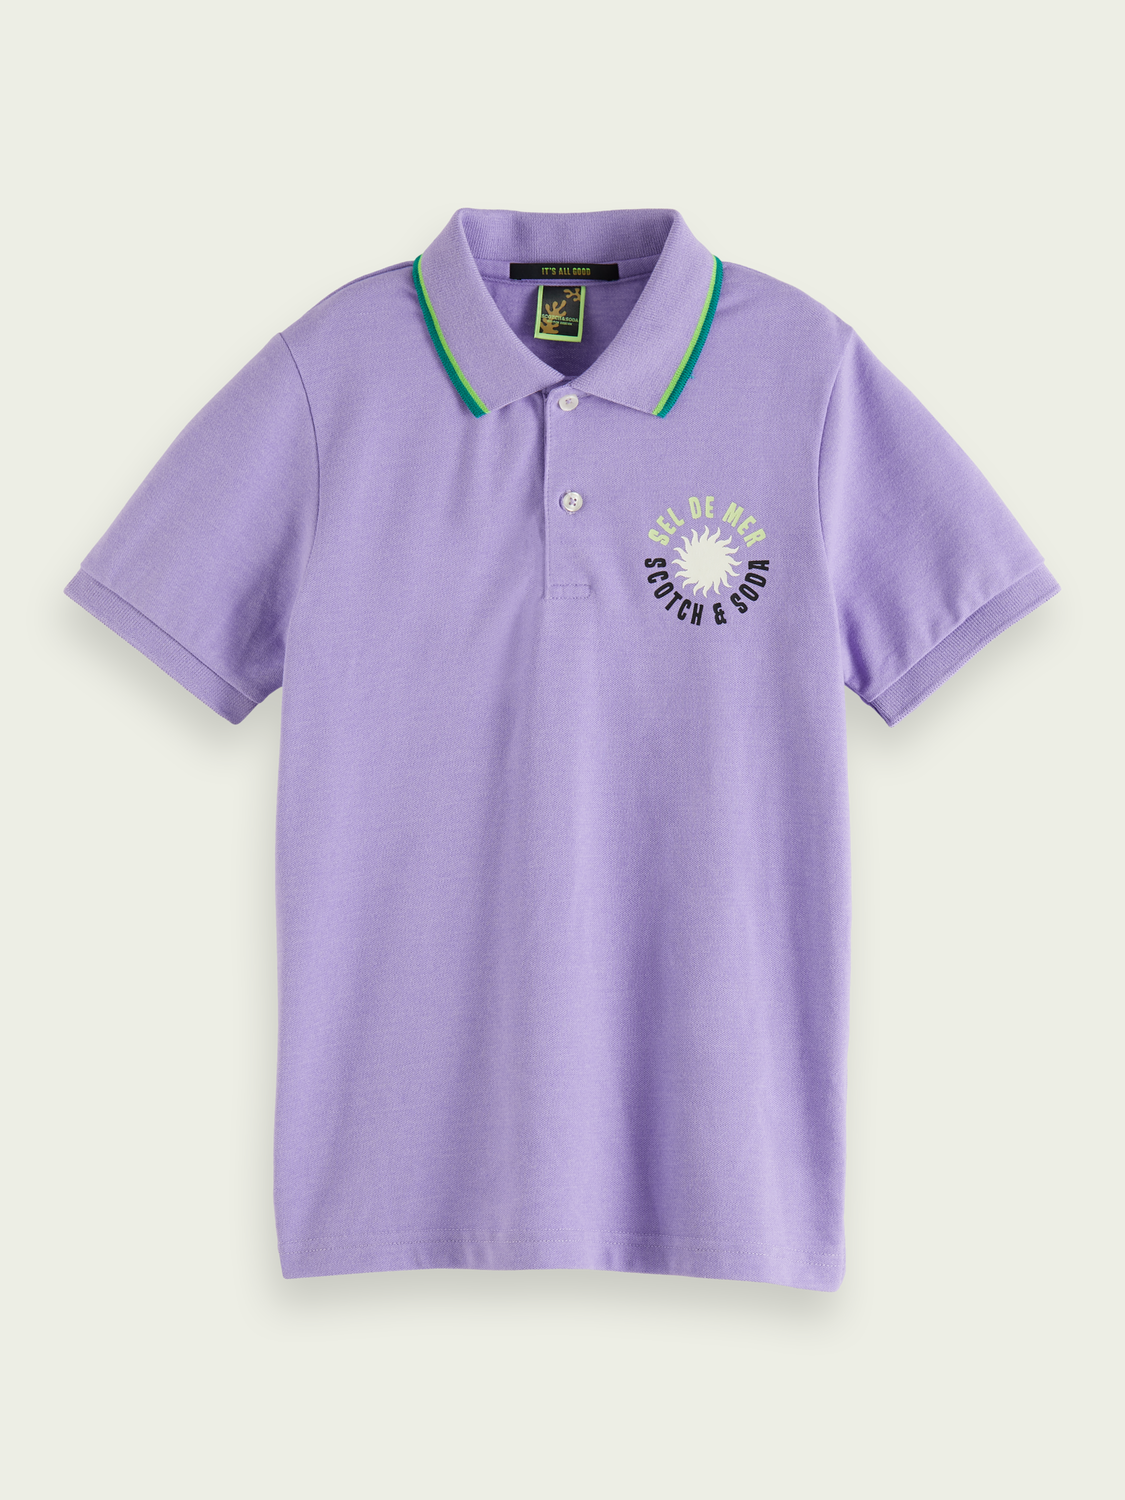 Kinder Kurzärmliges Poloshirt mit Artwork